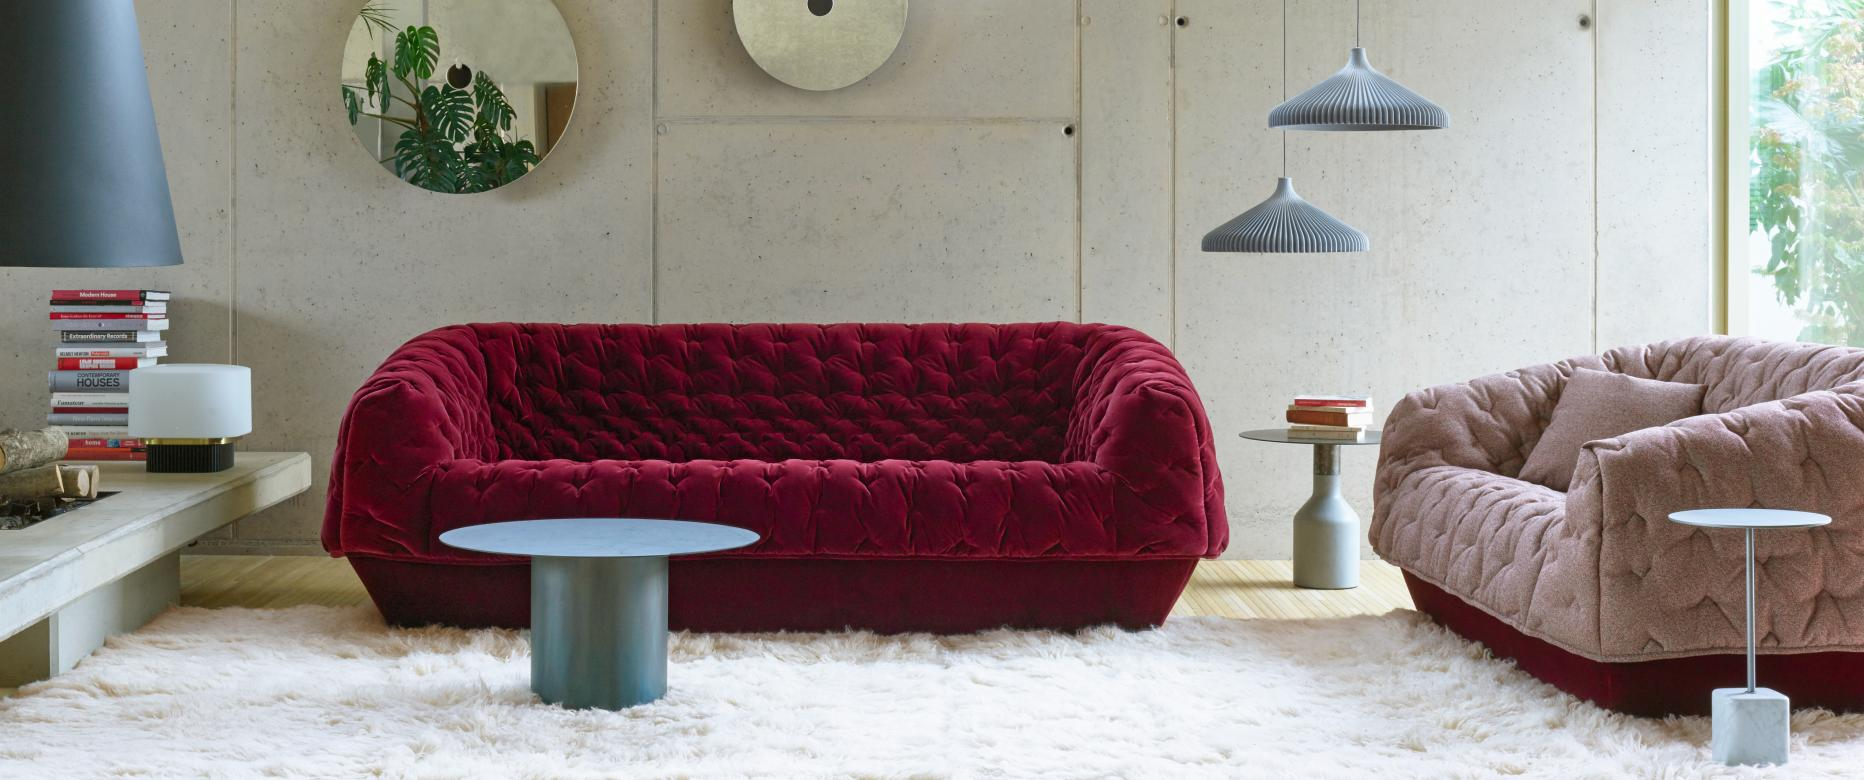 Ligne Roset Official Site | Contemporary High-End Furniture